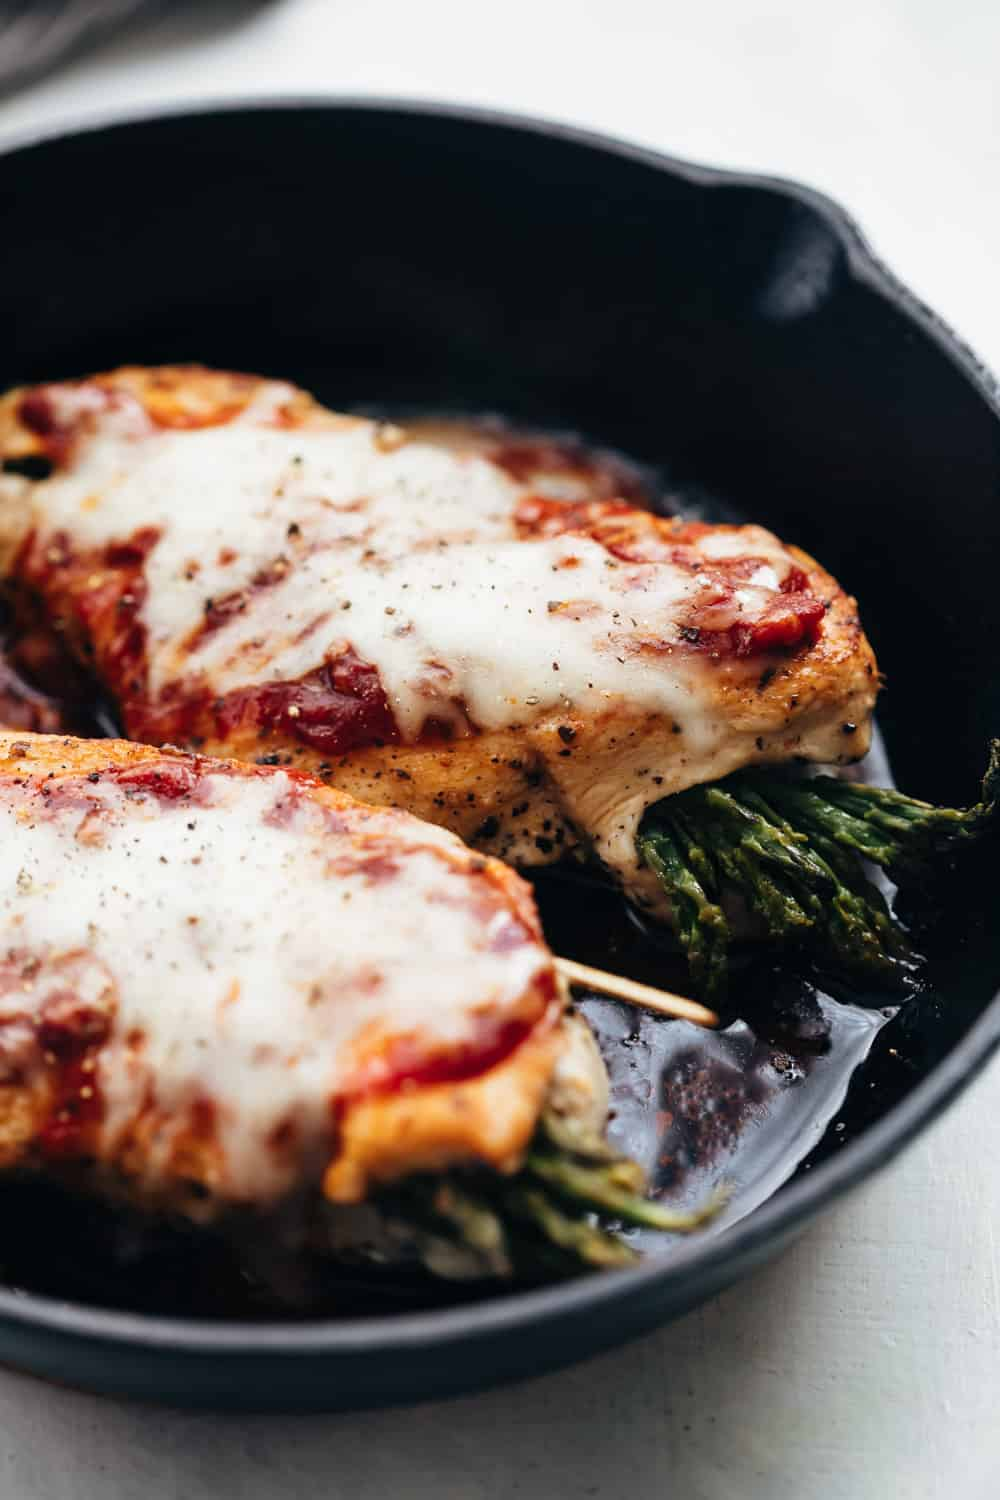 Asparagus stuffed chicken parmesan served on a cast iron pan